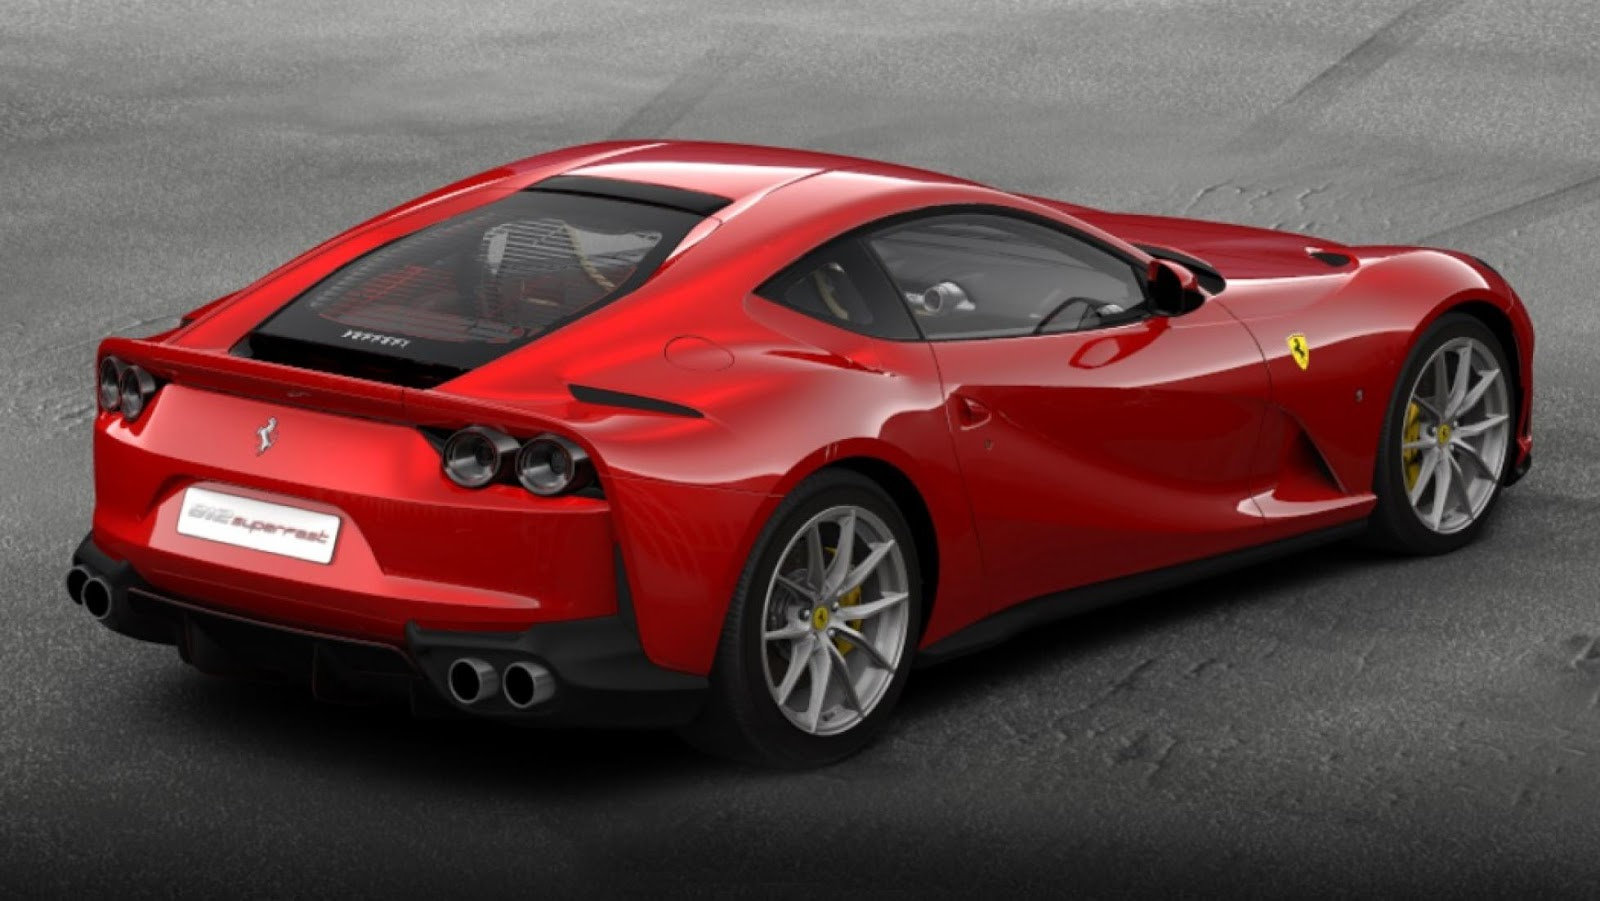 Ferrari S 812 Superfast Configurator Is A Great Time